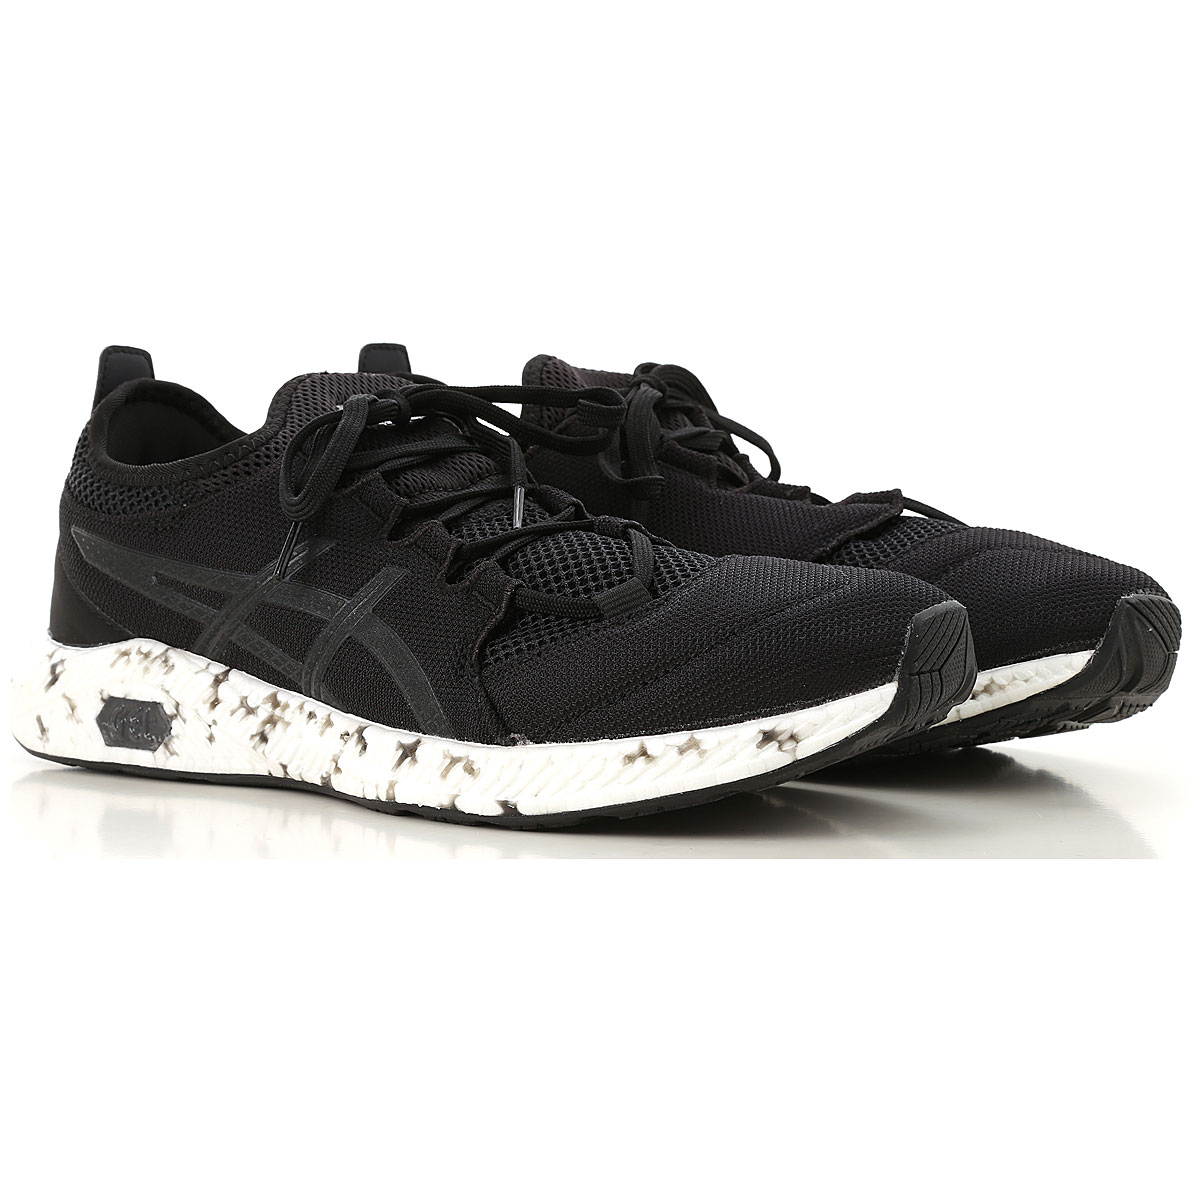 Image of Asics Sneakers for Men, Black, Textile, 2017, US 7 - EU 40 US 7.5 - EU 40.5 US 8 - EU 41.5 US 8.5 - EU 42.5 US 9 - EU 42.5 US 9.5 - EU 43.5 US 10 - EU 44